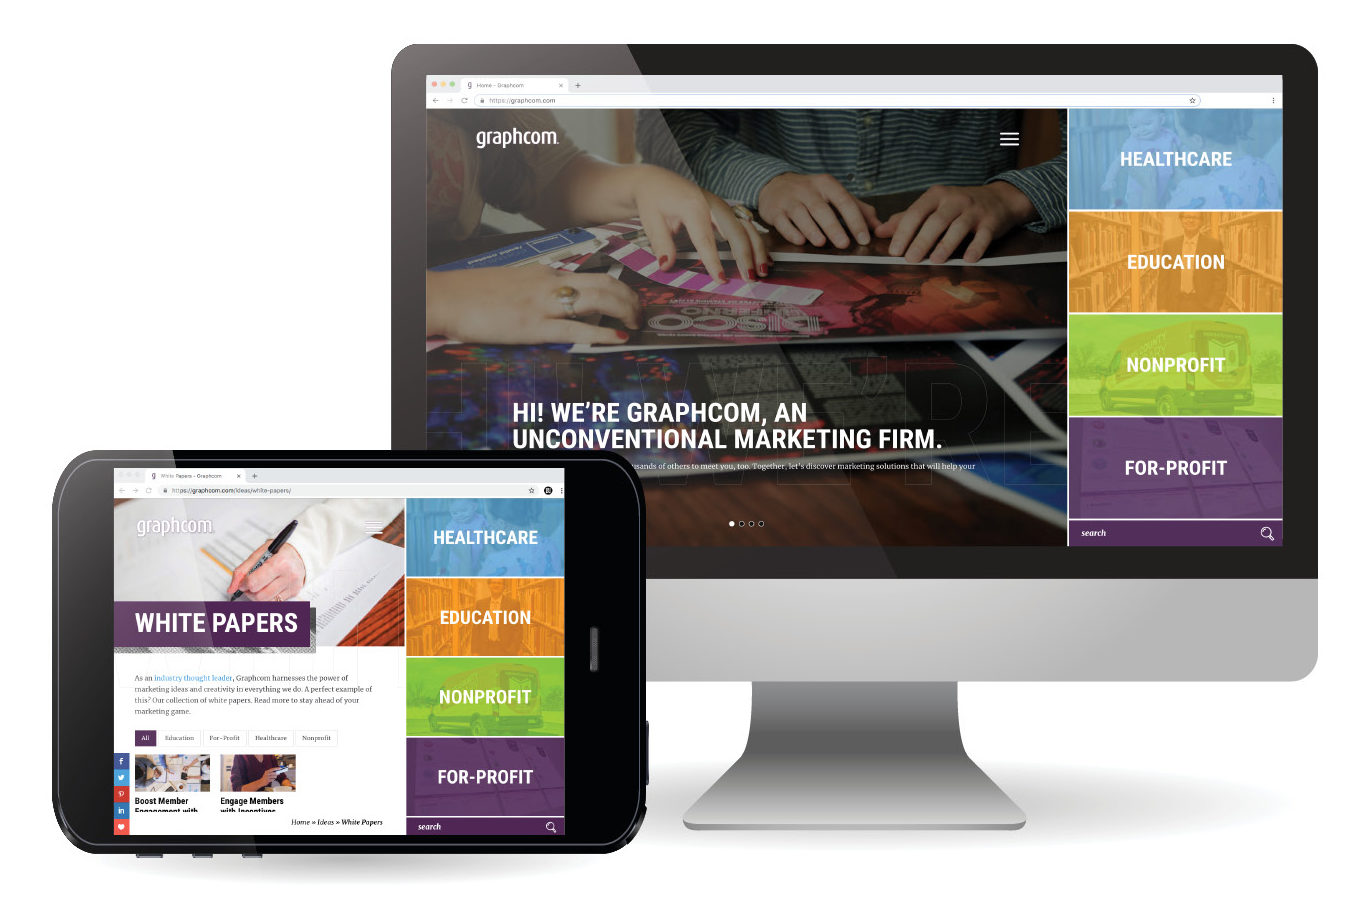 graphcom marketing agency website and mobile view